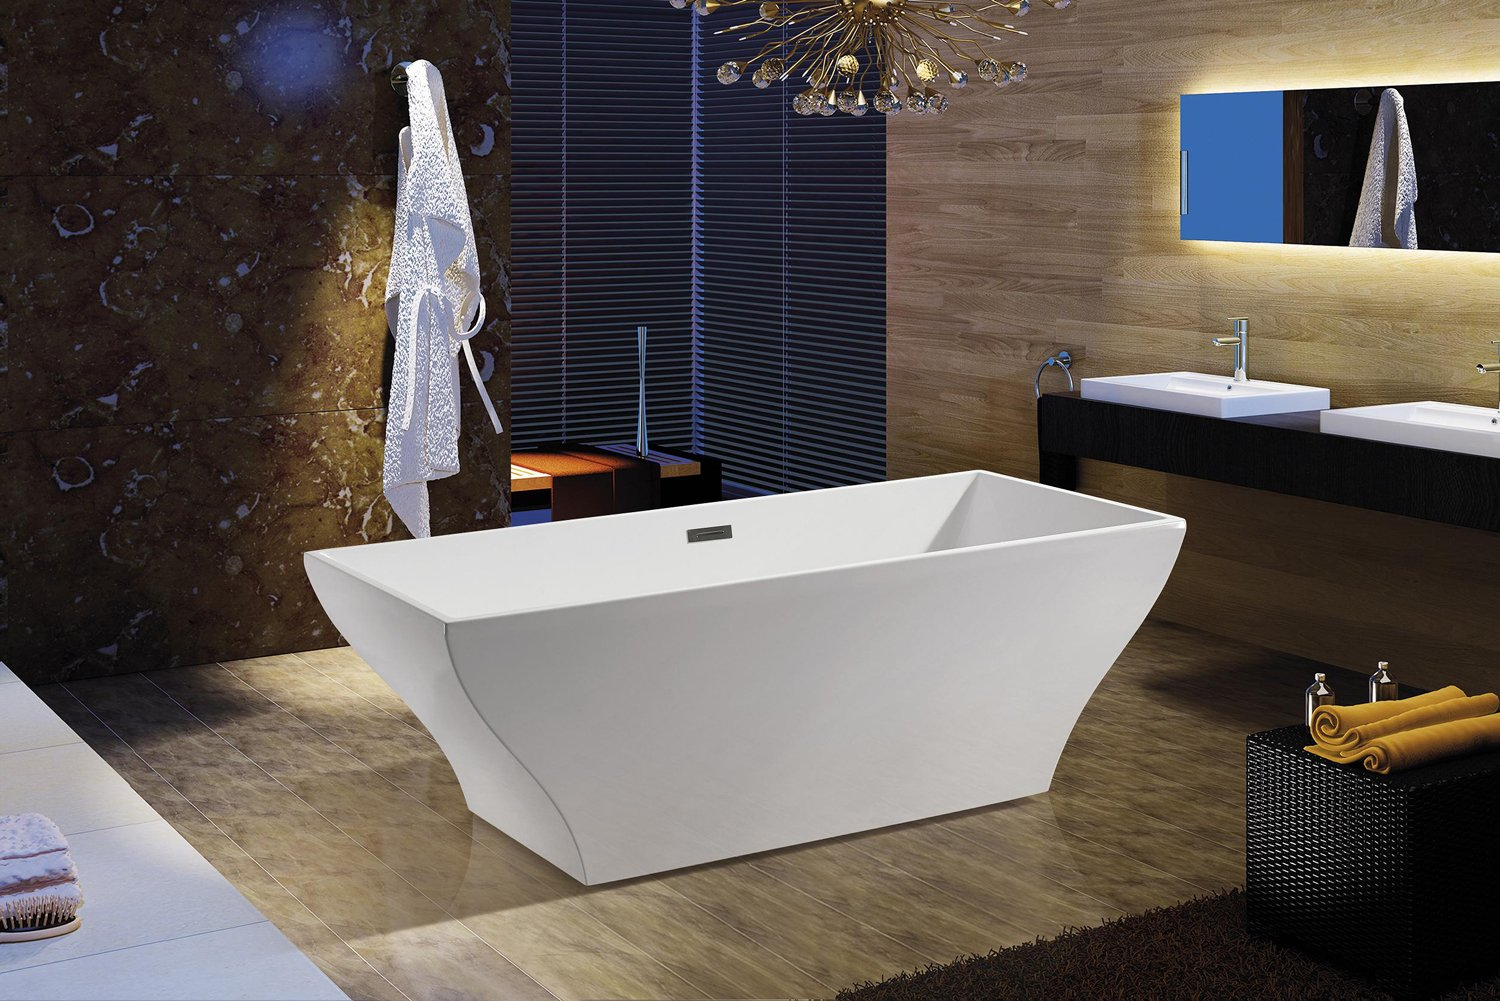 AKDY F296A Bathroom White Color Free Standing Acrylic Bathtub     Amazon.com